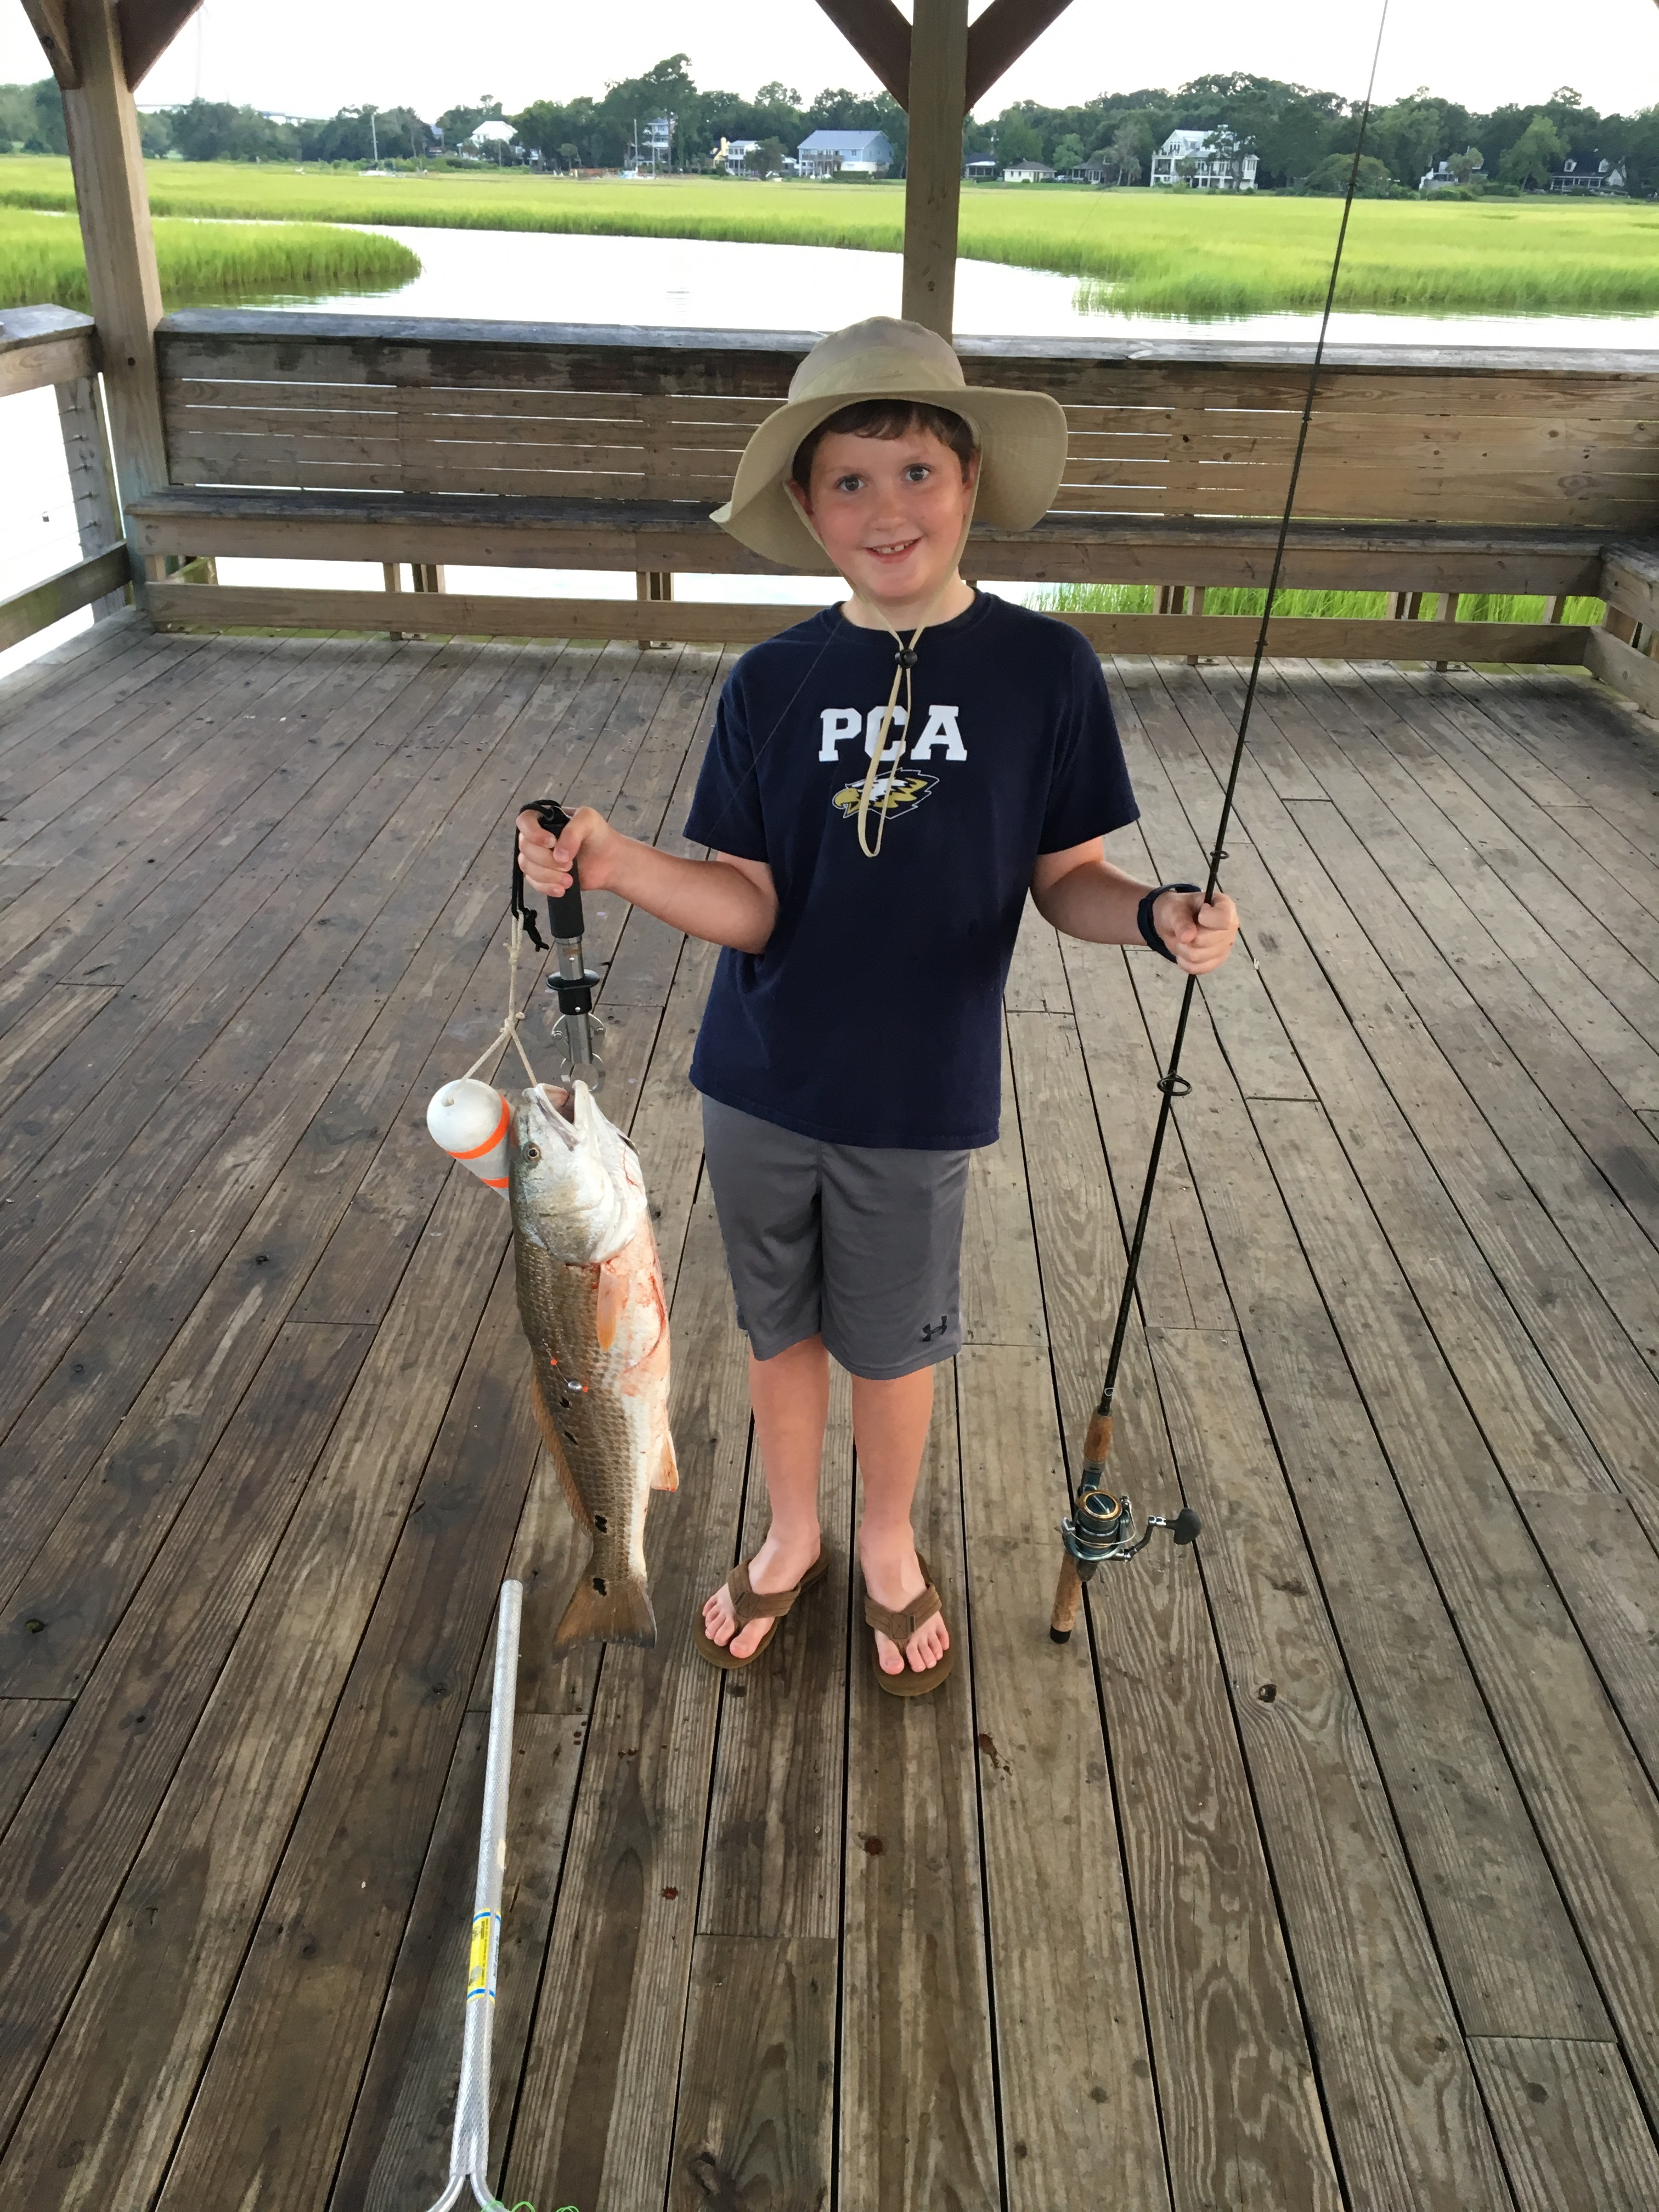 ongratulations to Daniel Island resident Charlie Angerman, who recently caught and released his first big fish! Charlie hooked the 27-inch big red drum on August 9 on the Shem Creek Pier with his Poppy, Hugh Tant.